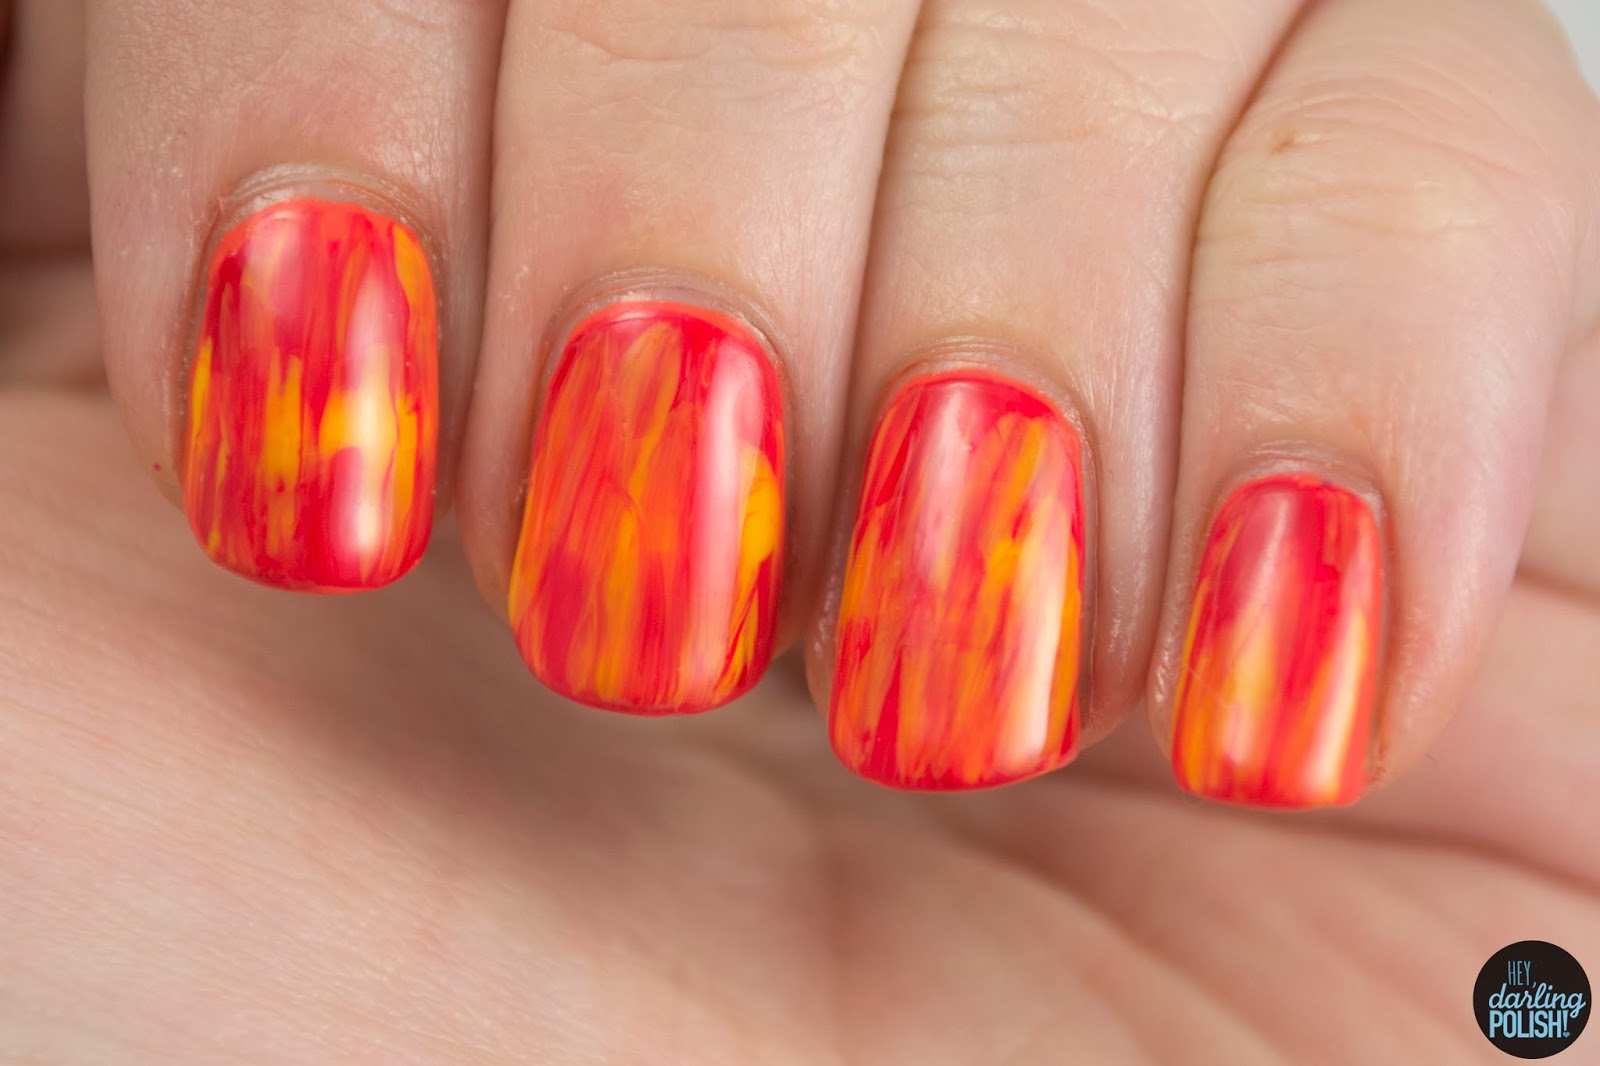 nails, nail polish, polish, nail art, red, yellow, orange, tri polish challenge, tpc, color drag, hey darling polish